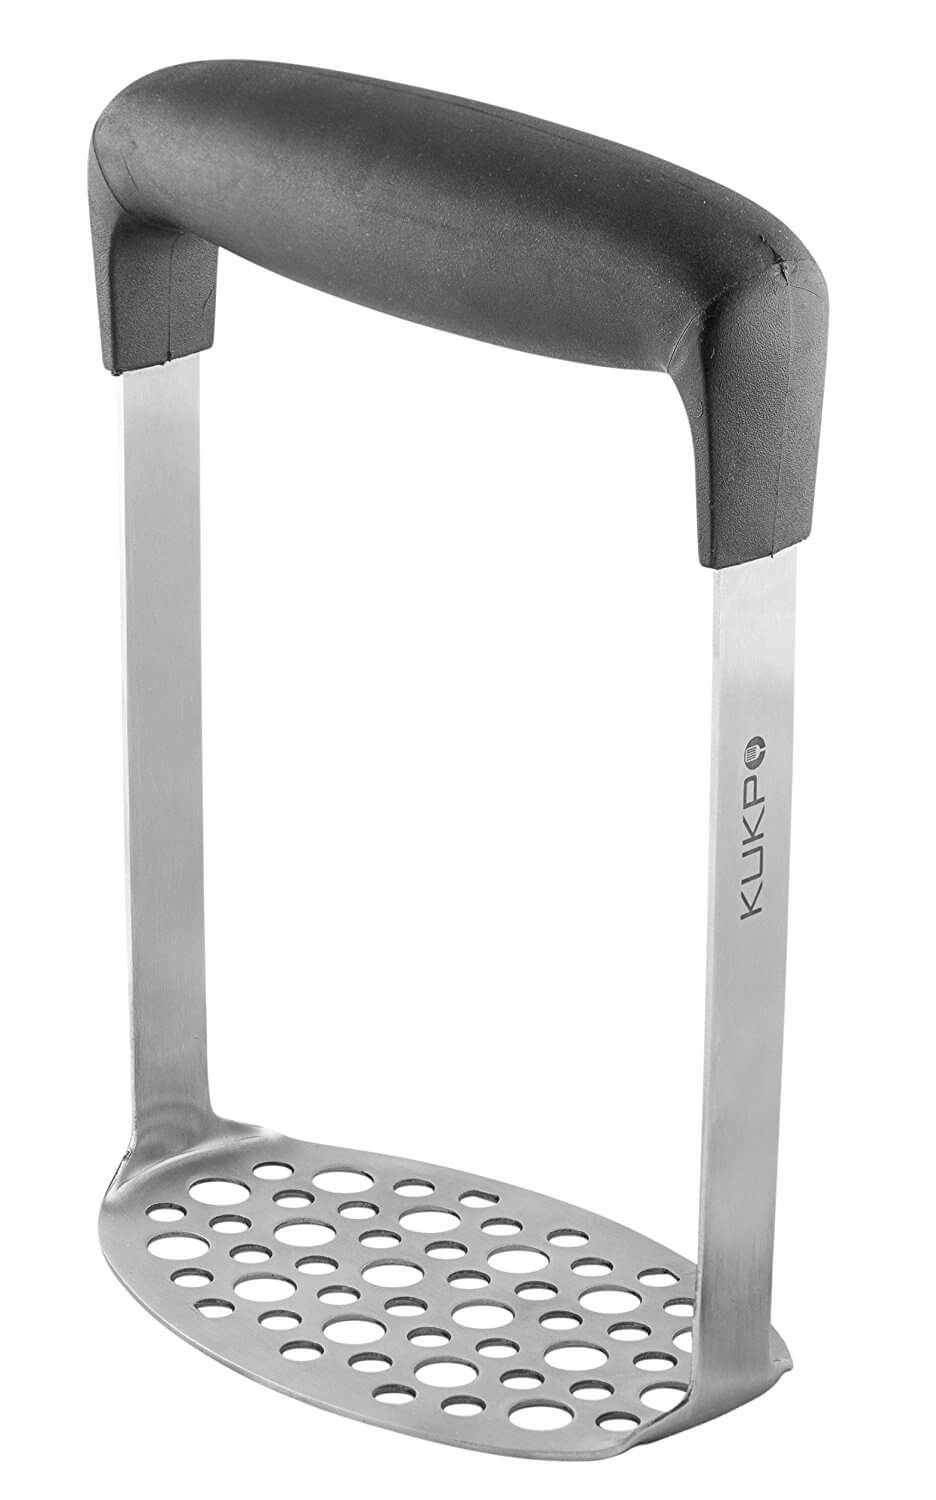 Potato Masher Stainless Steel Metal for Mash Wide Grip Ricer